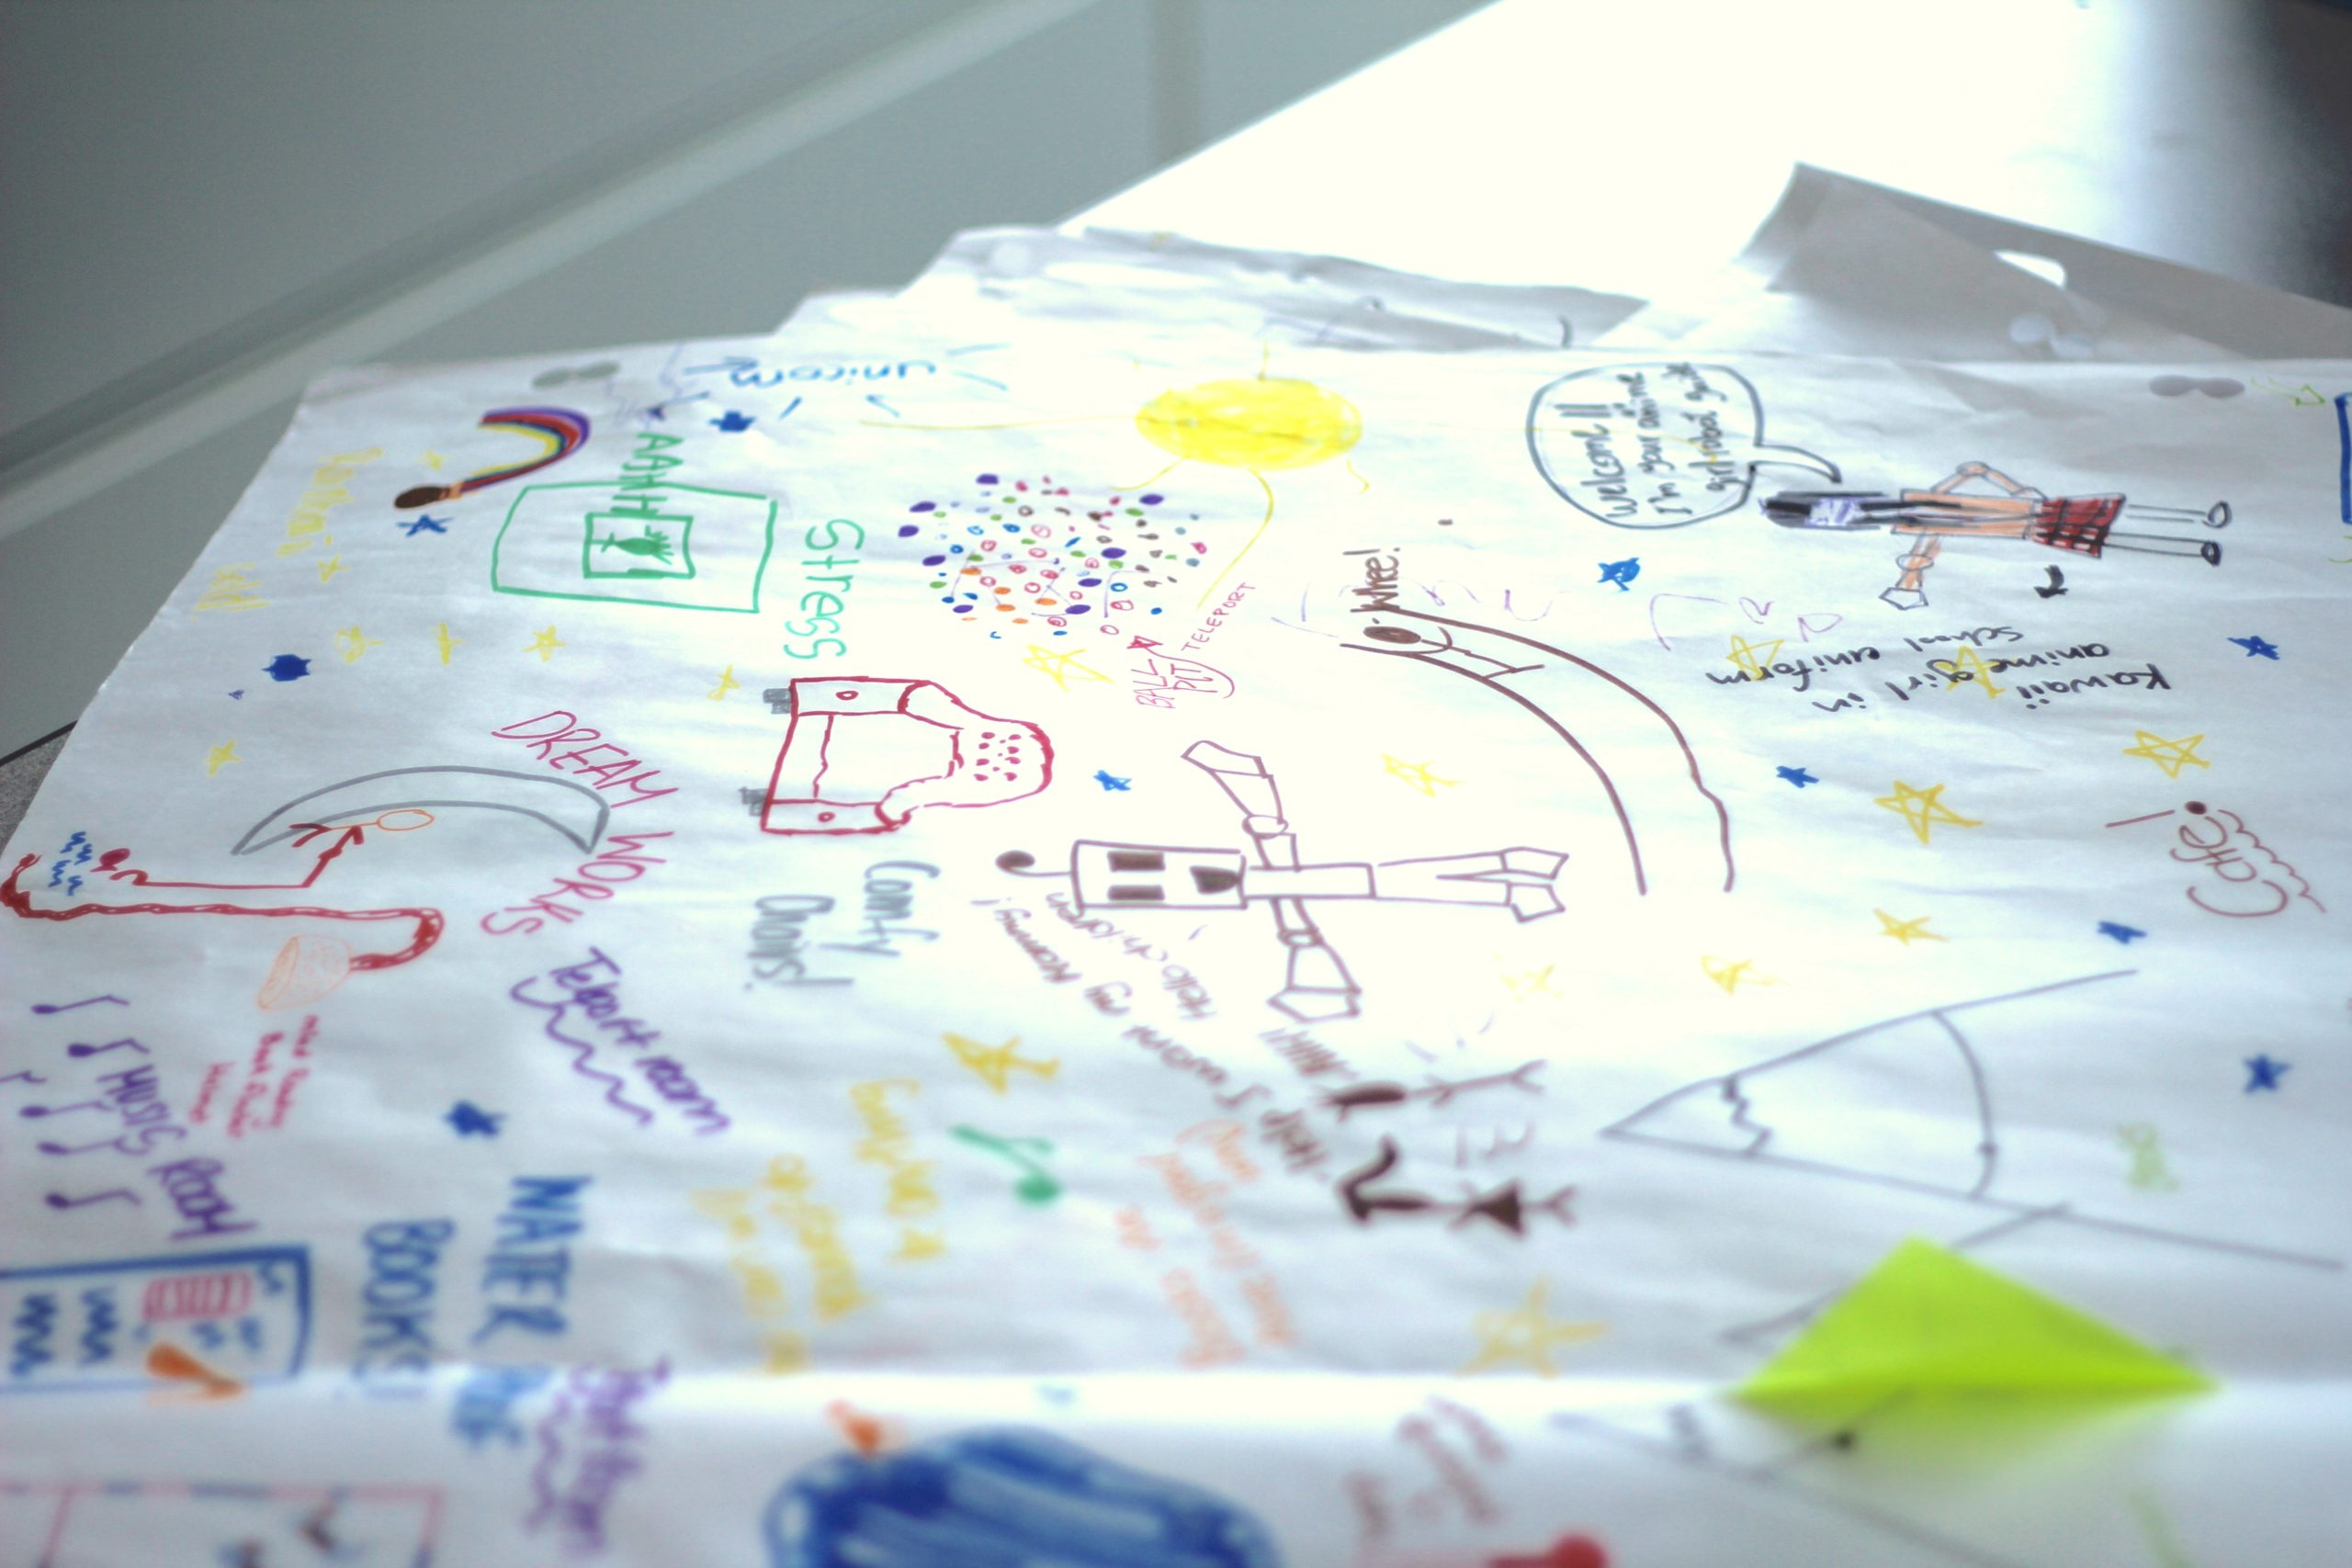 How Does Patient-Centred Design Work?